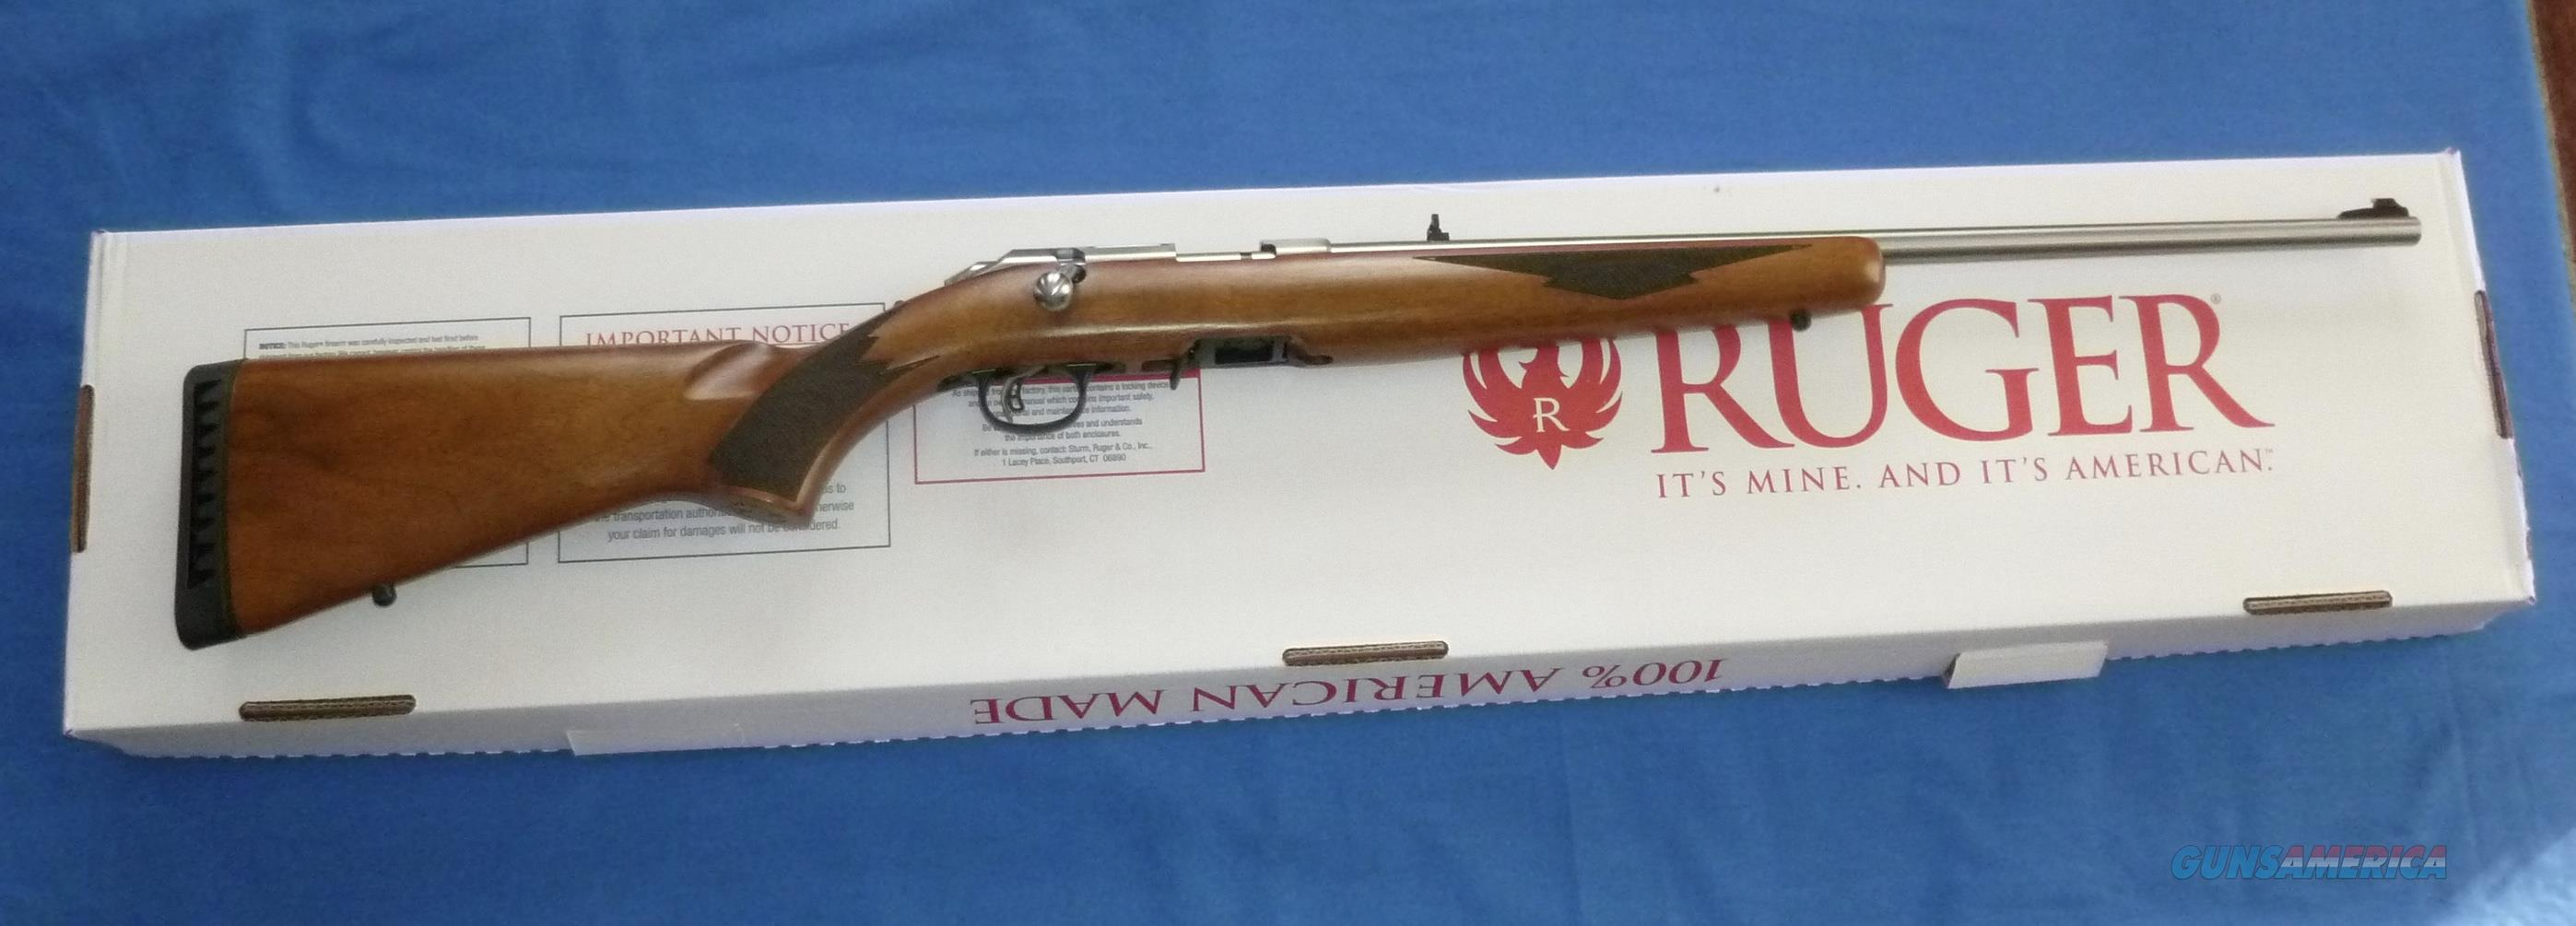 RUGER AMERICAN RIMFIRE STAINLESS STEEL 22LR RIFLE BOLT ACTION RIFLE W/WALNUT STOCK  TALO DISTR.  Guns > Rifles > Ruger Rifles > American Rifle